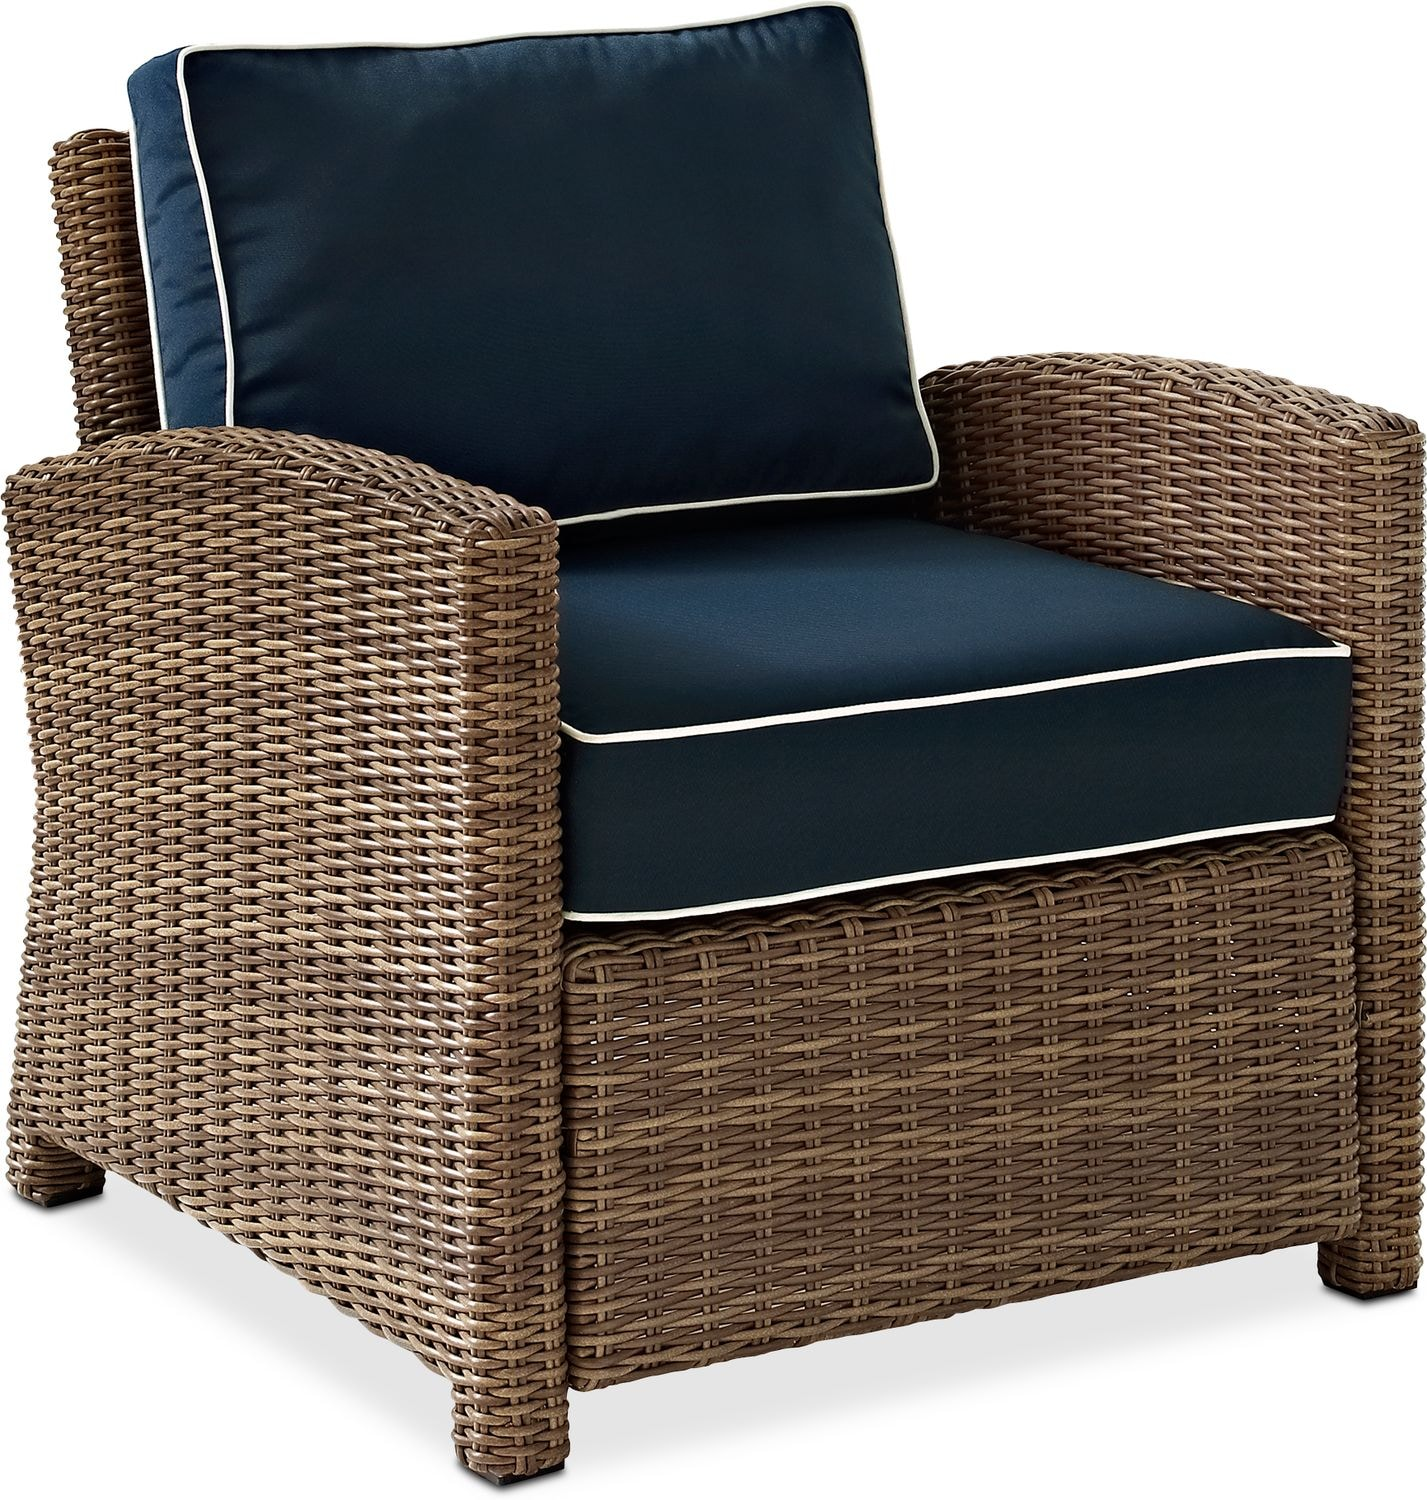 Outdoor Furniture - Destin Outdoor Chair